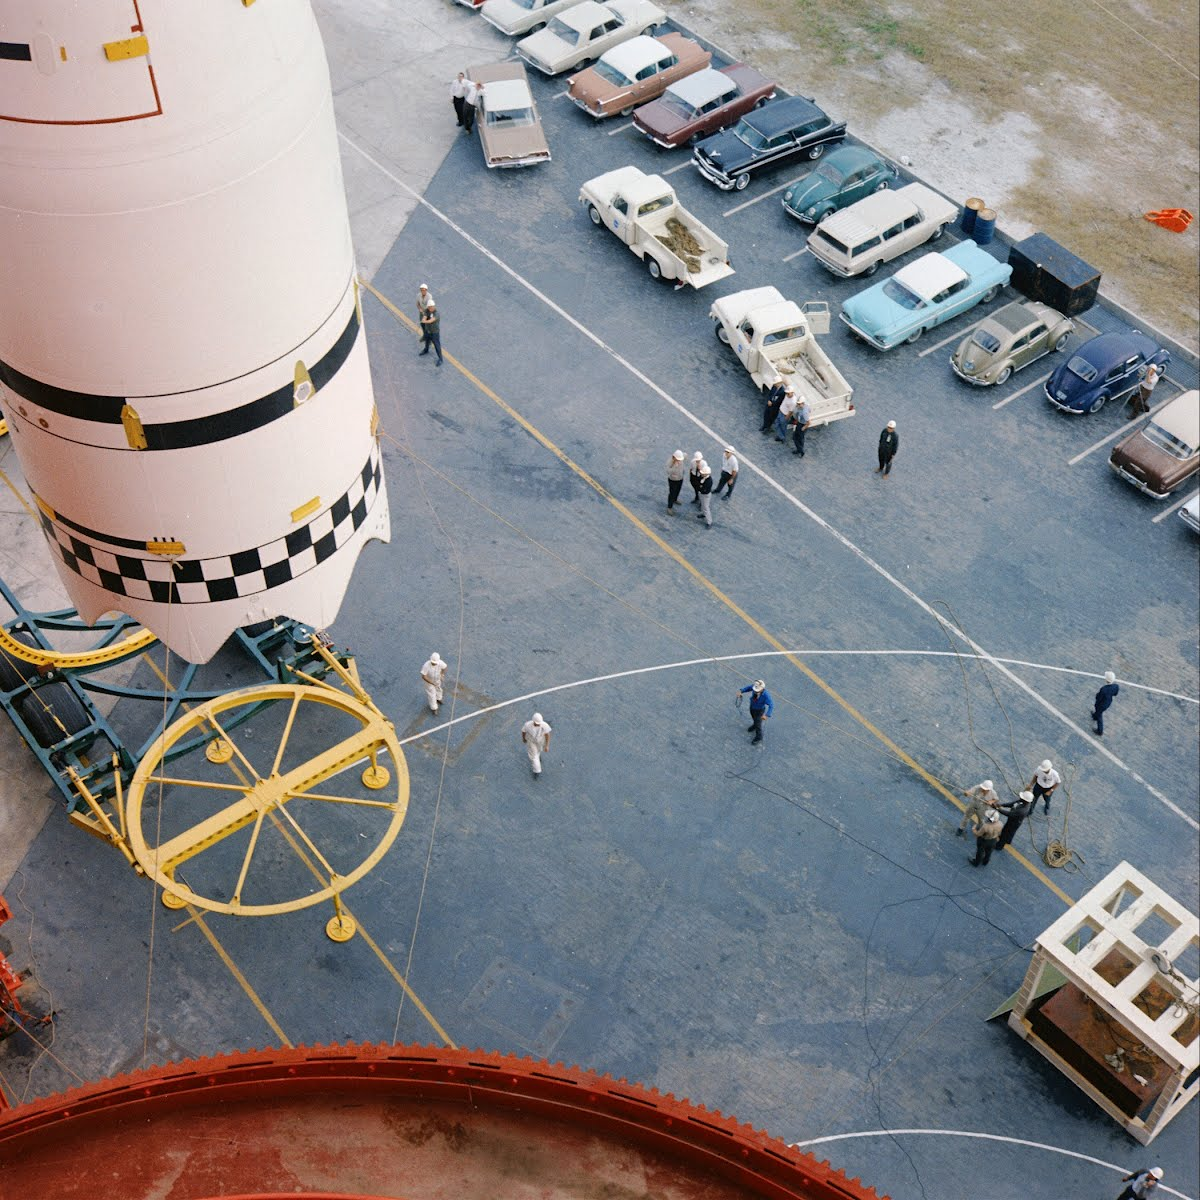 Saturn 2Nd Stage Cape Canaveral